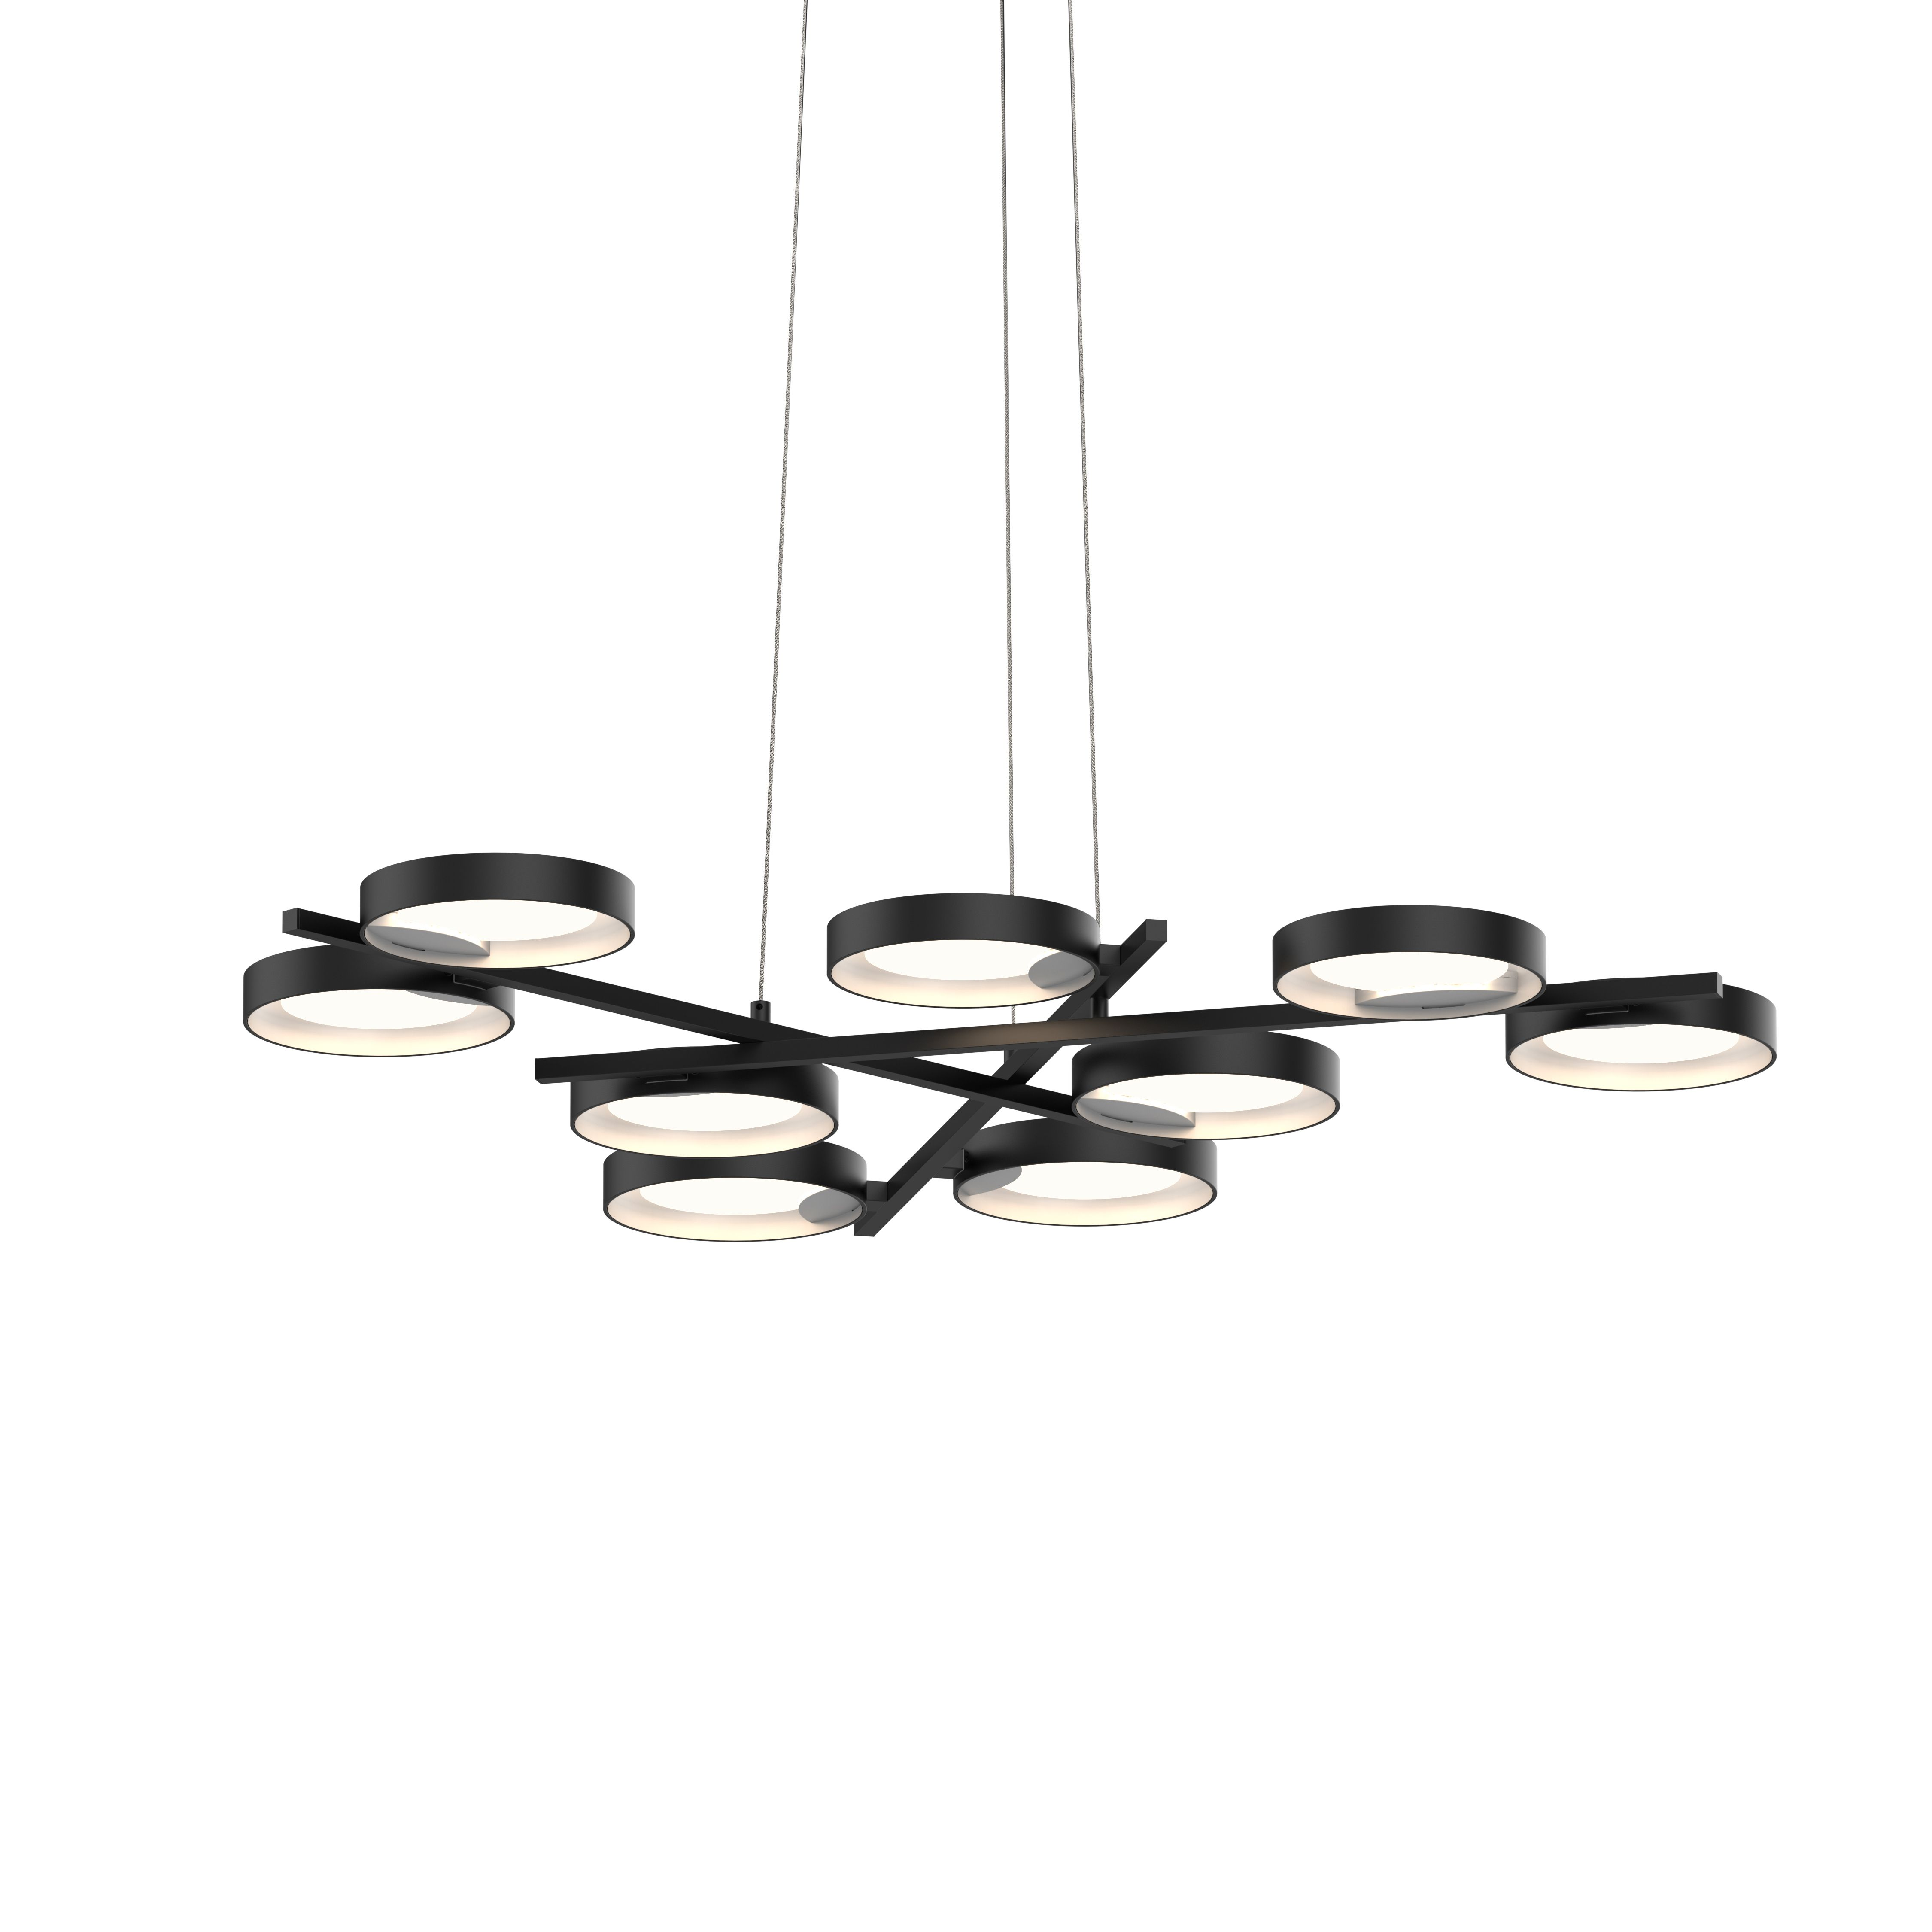 Light Guide Ring 9 Light Led Pendant 25w Sonneman